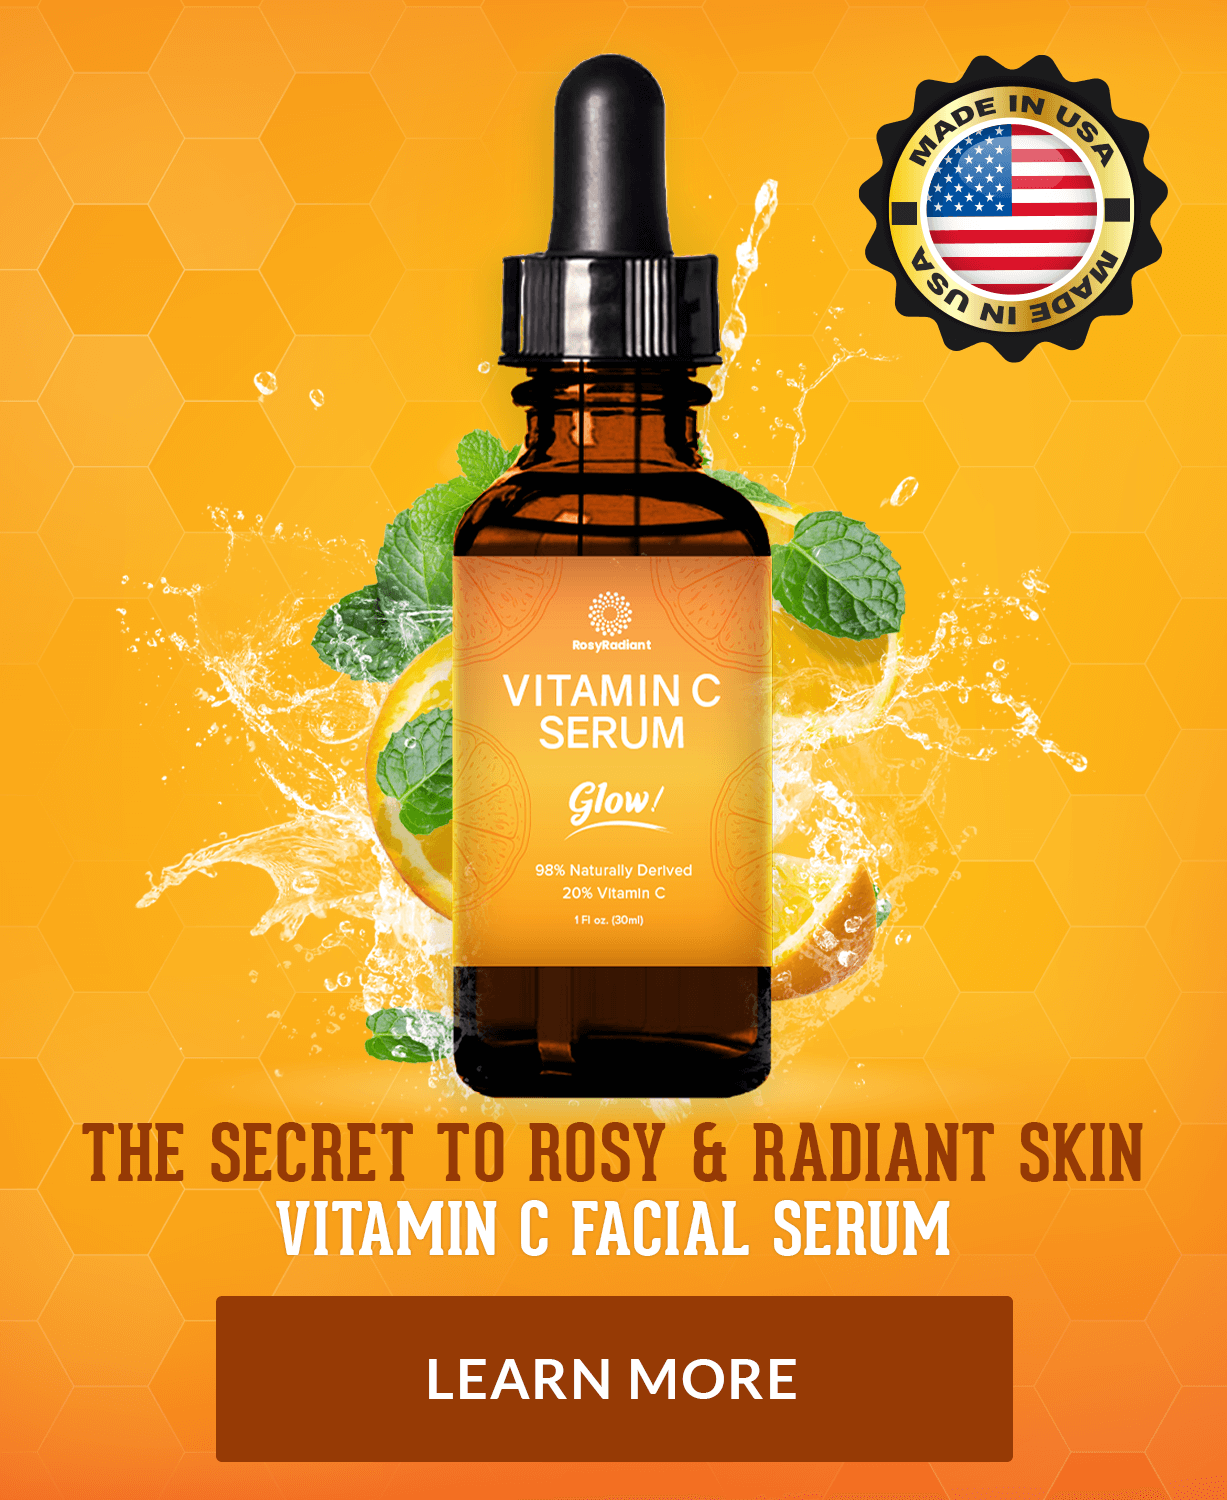 The Secret to Rosy & Radiant Skin